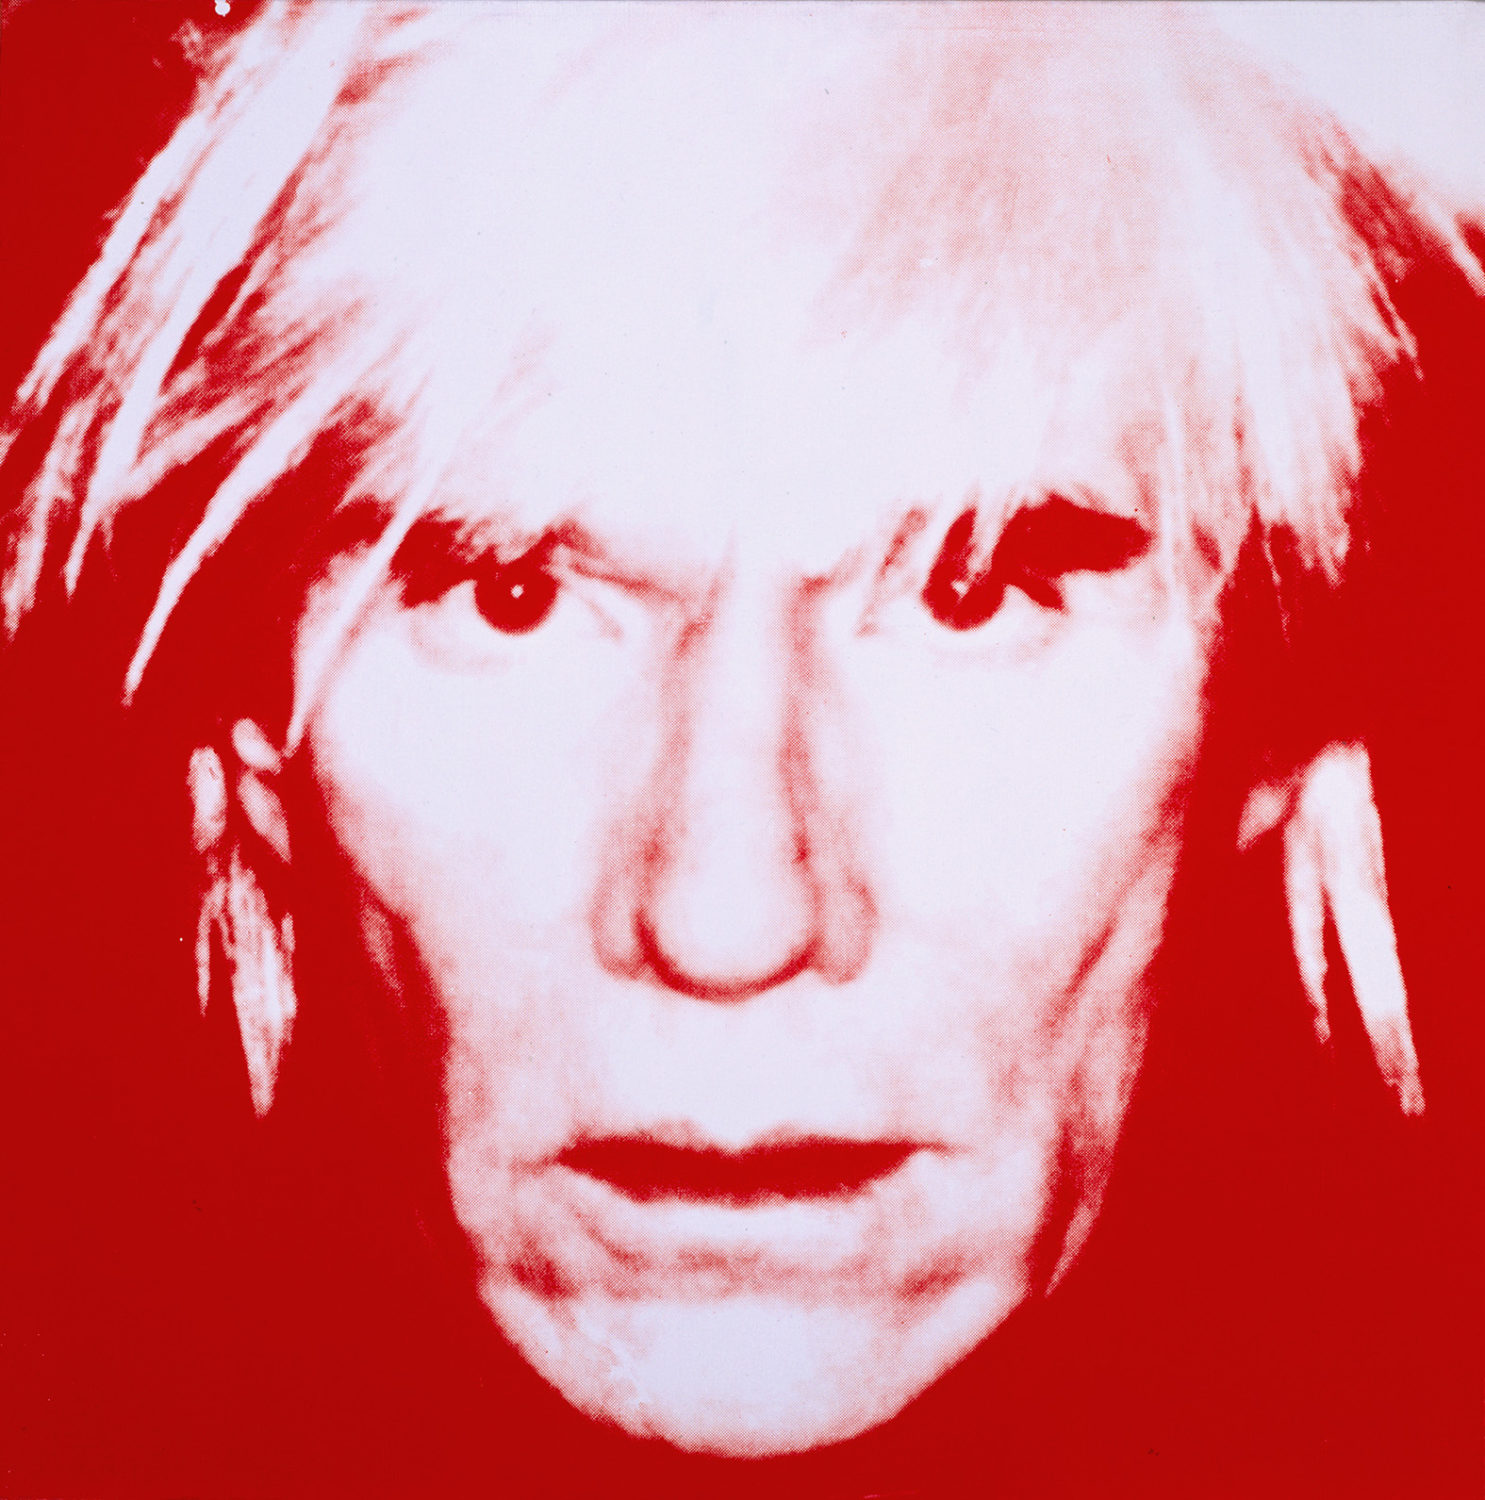 Andy Warhol,  Self-Portrait , 1986, The Andy Warhol Museum, Pittsburgh, © The Andy Warhol Foundation for the Visual Arts, Inc.